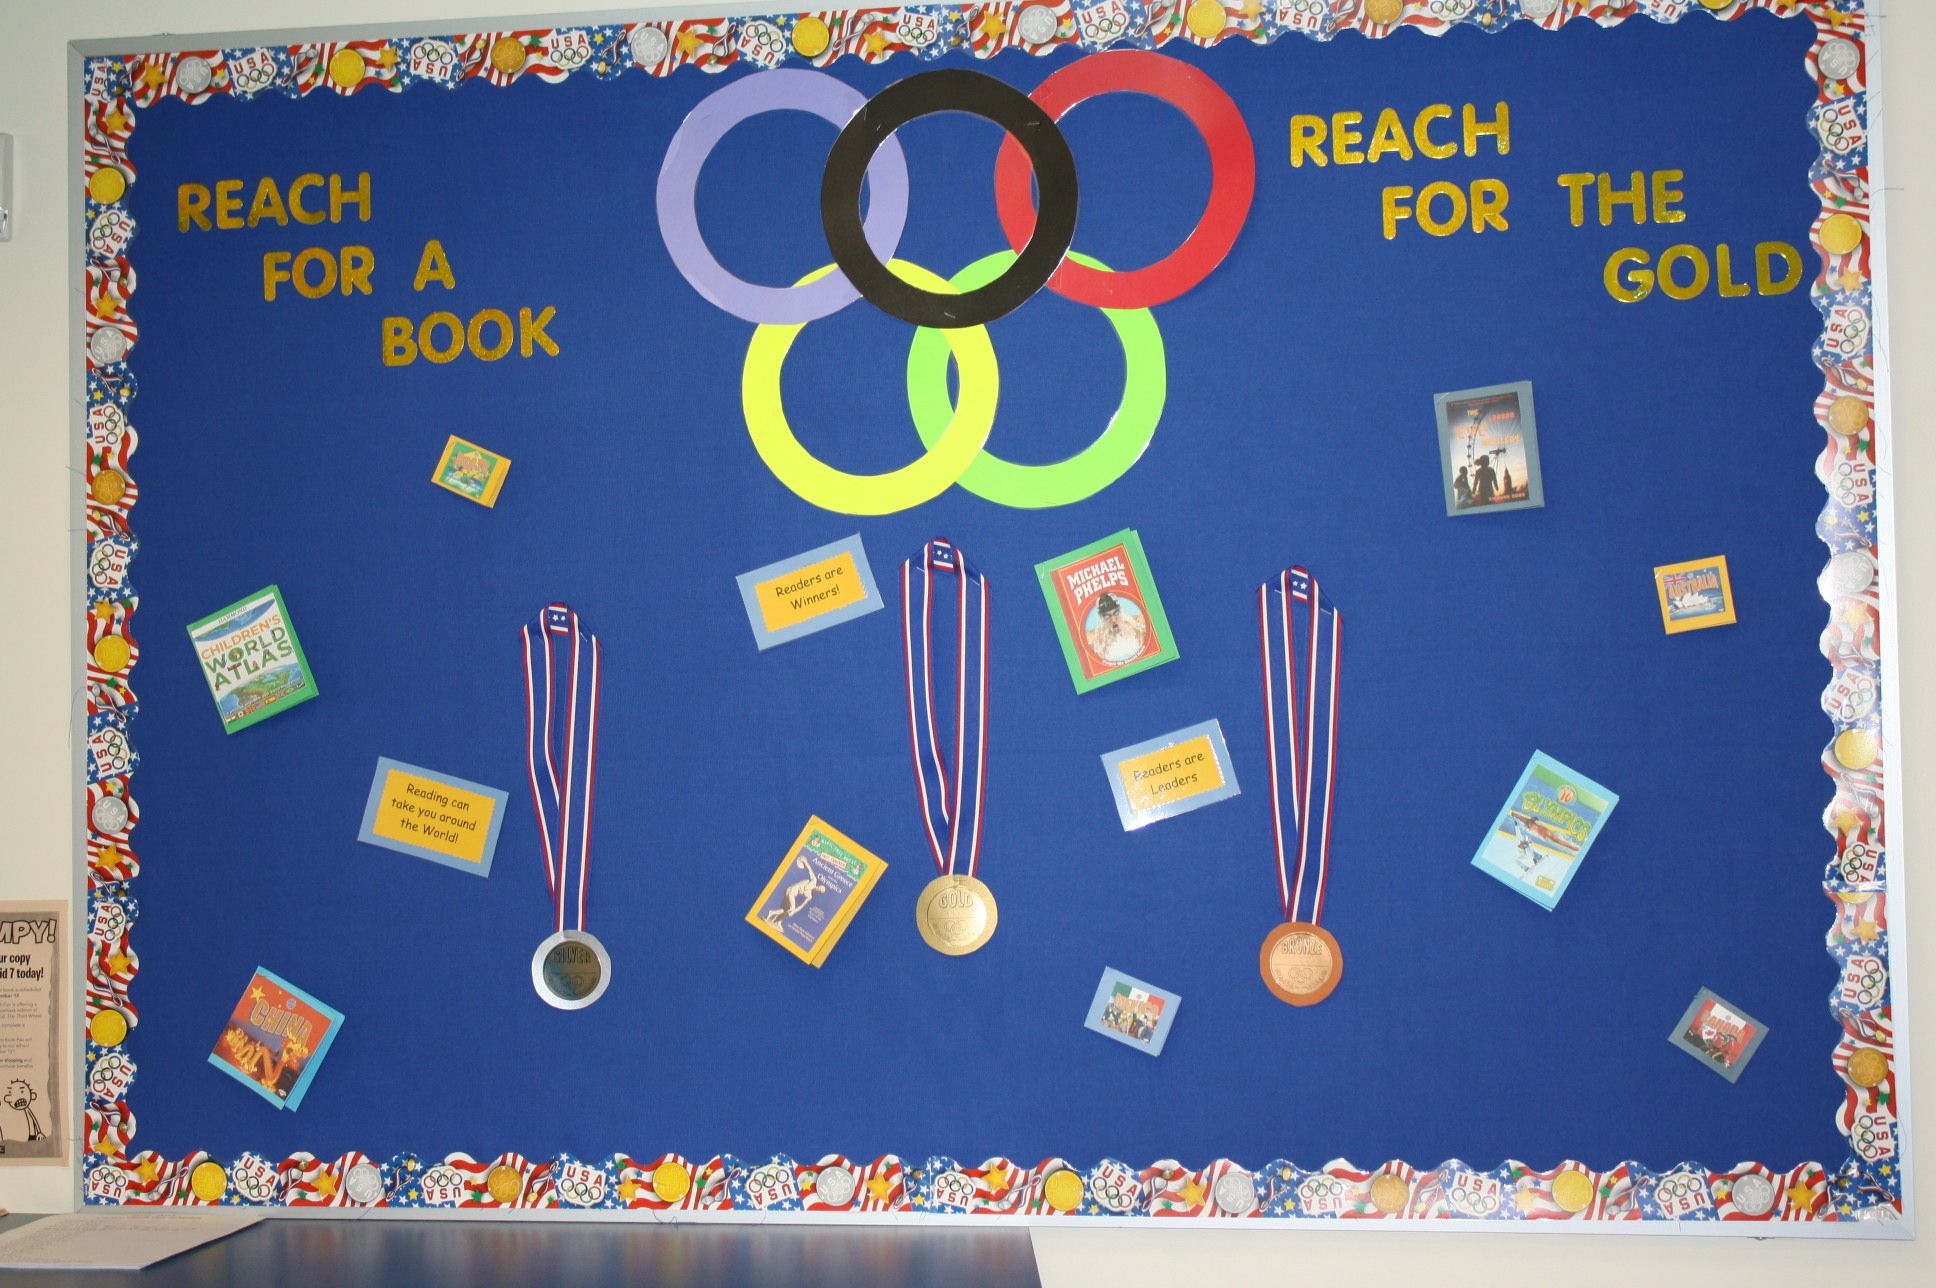 Olympic Reach For A Book And The Gold Sports Bulletin Boards Idea Library Displays